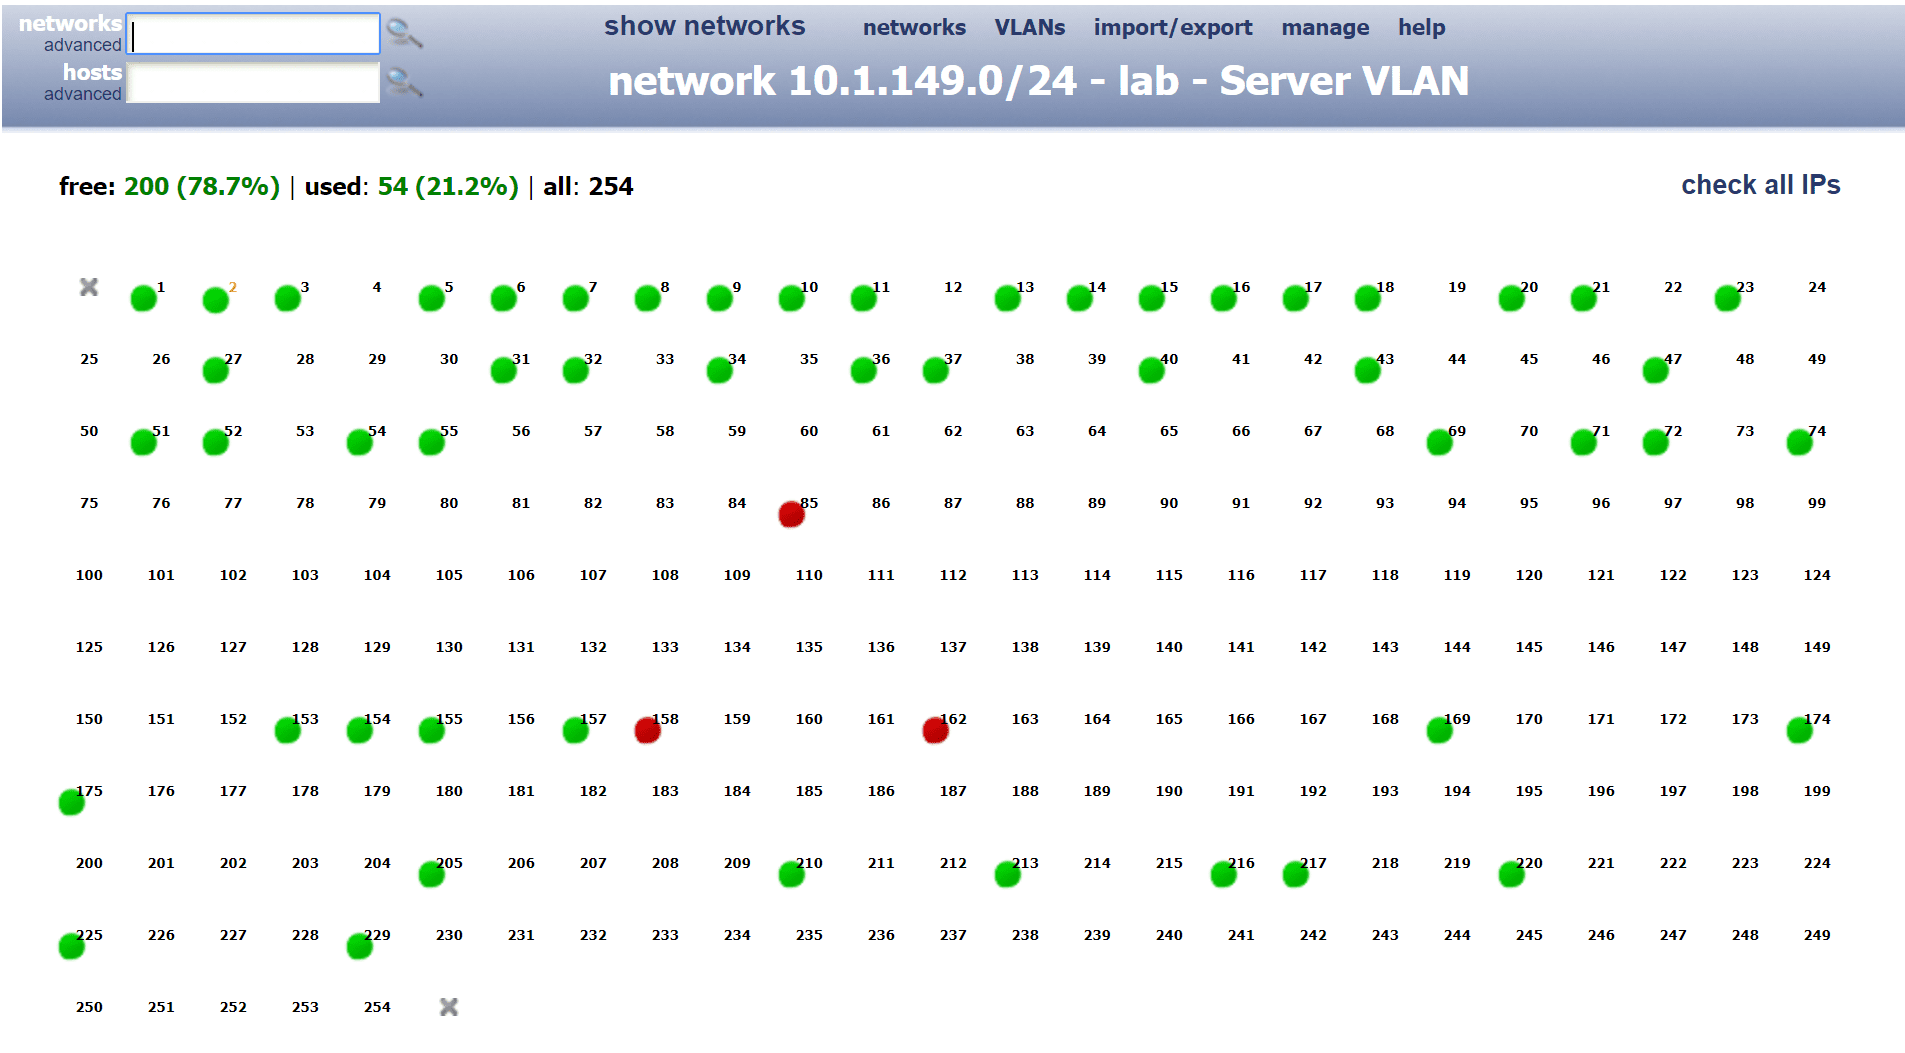 Network-IP-usage-displayed-in-an-easy-to-discern-format Keep Track of IP Addresses Automatically with GestioIP